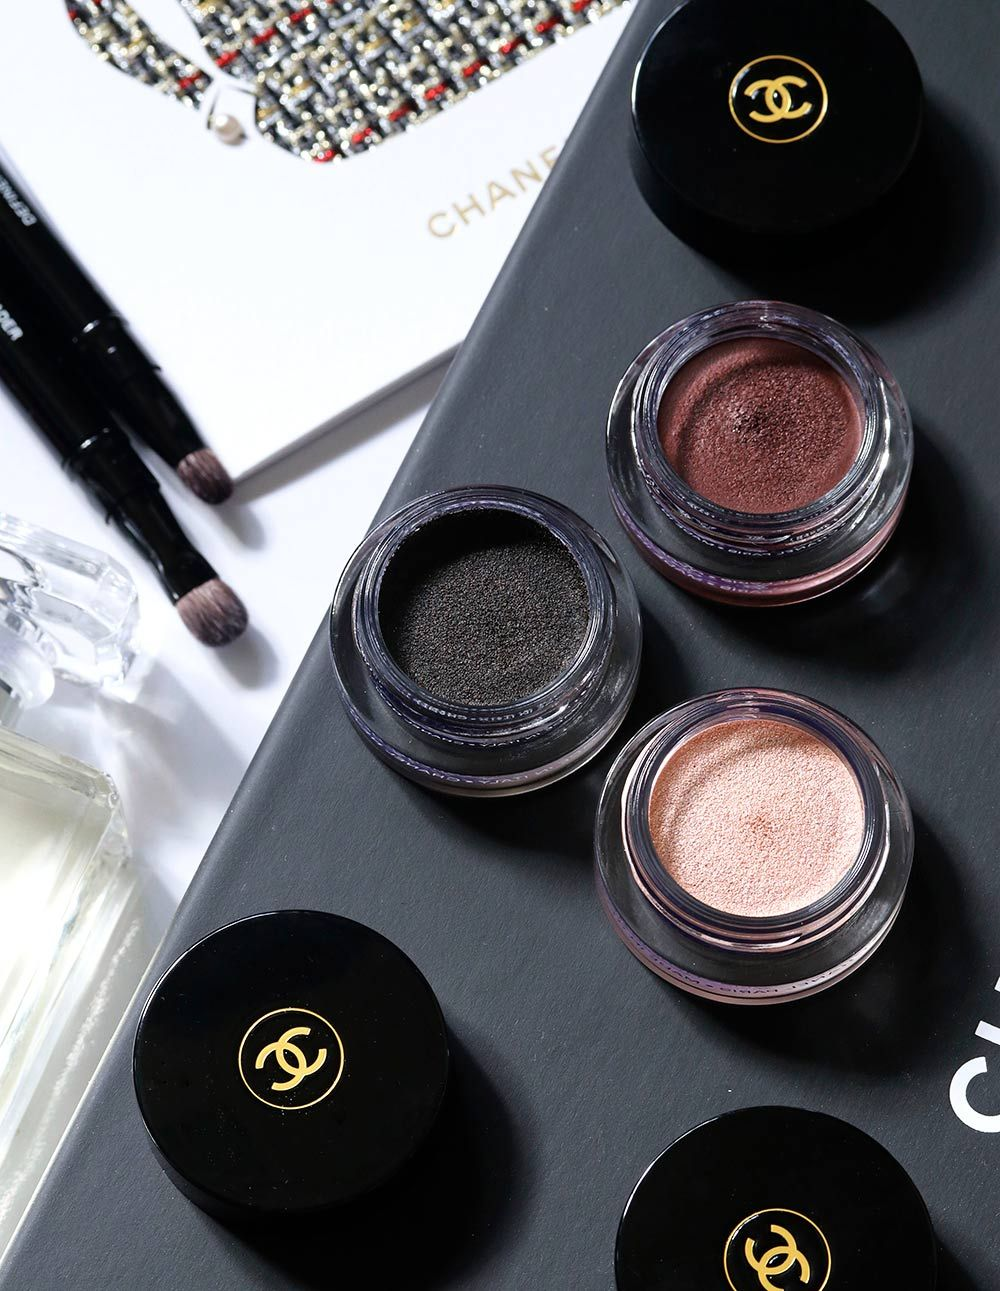 963a785e3d8b chanel ombre premiere longwear cream eyeshadow   My Passion   Makeup ...